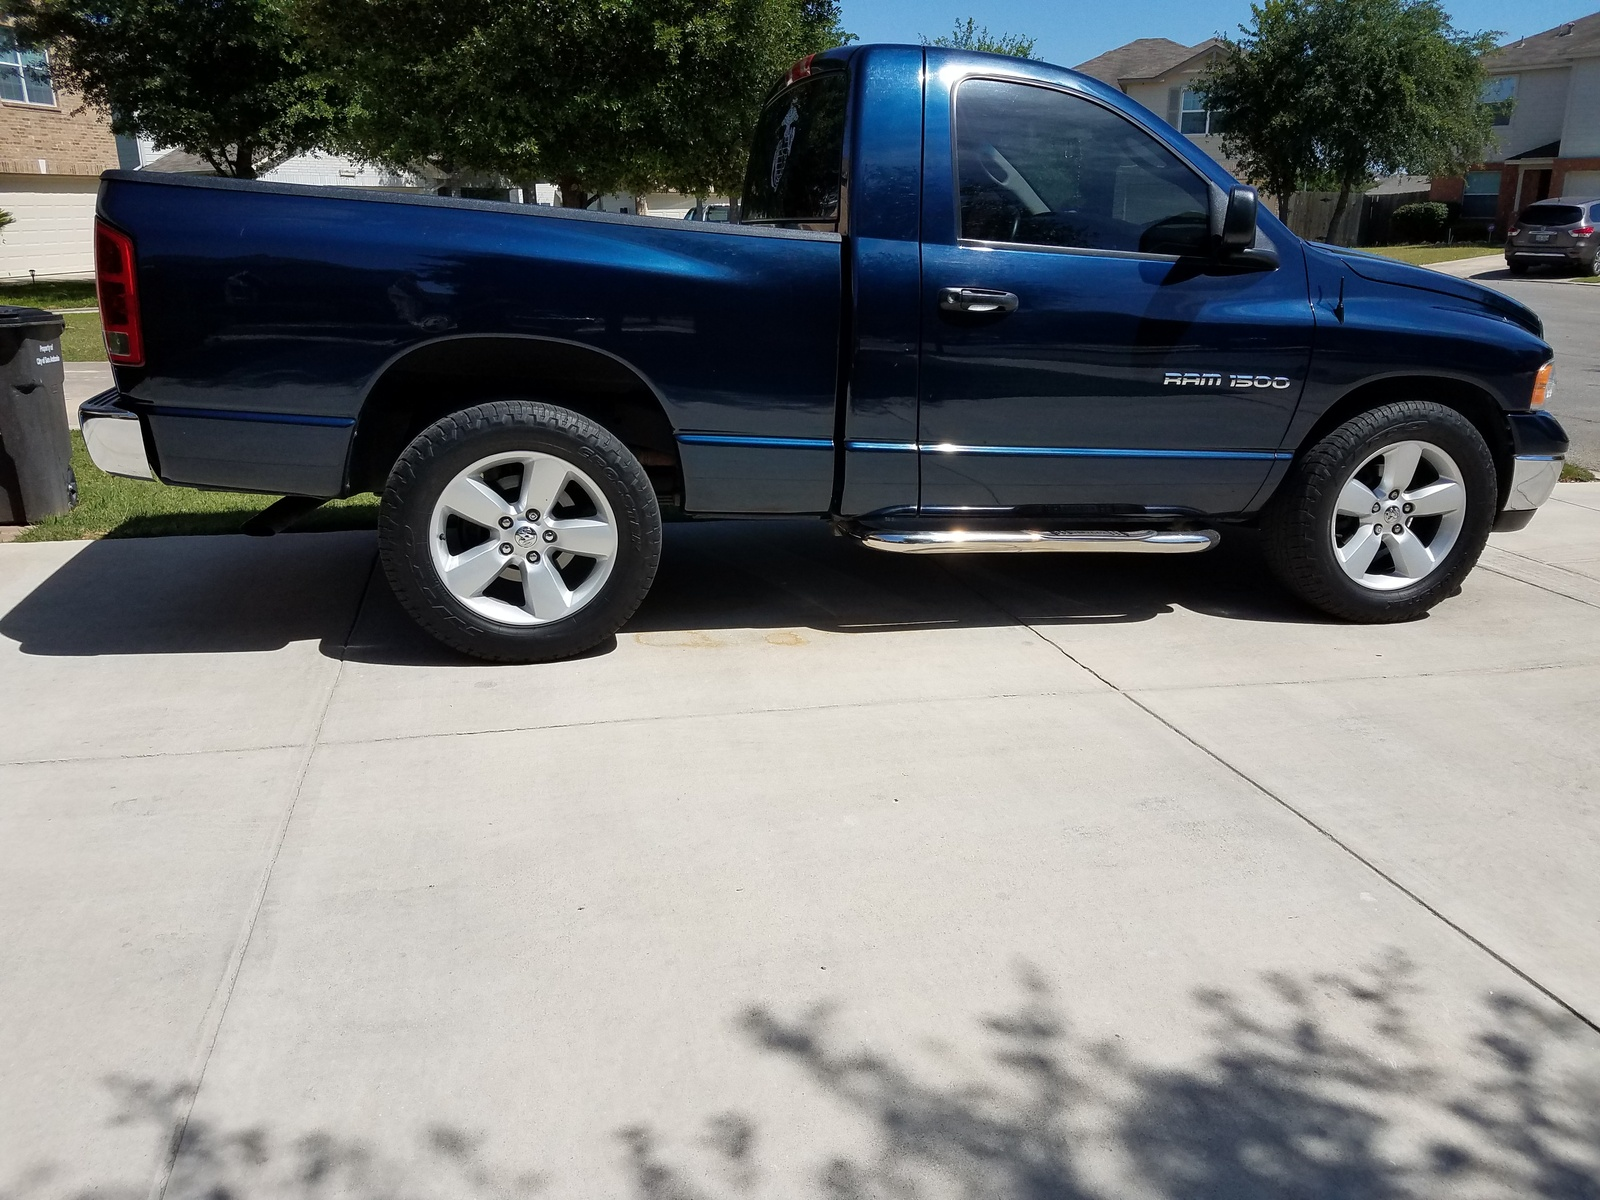 Dodge Ram 1500 Tires >> Dodge Ram 1500 Questions Newer Model Oversized Tires Cargurus